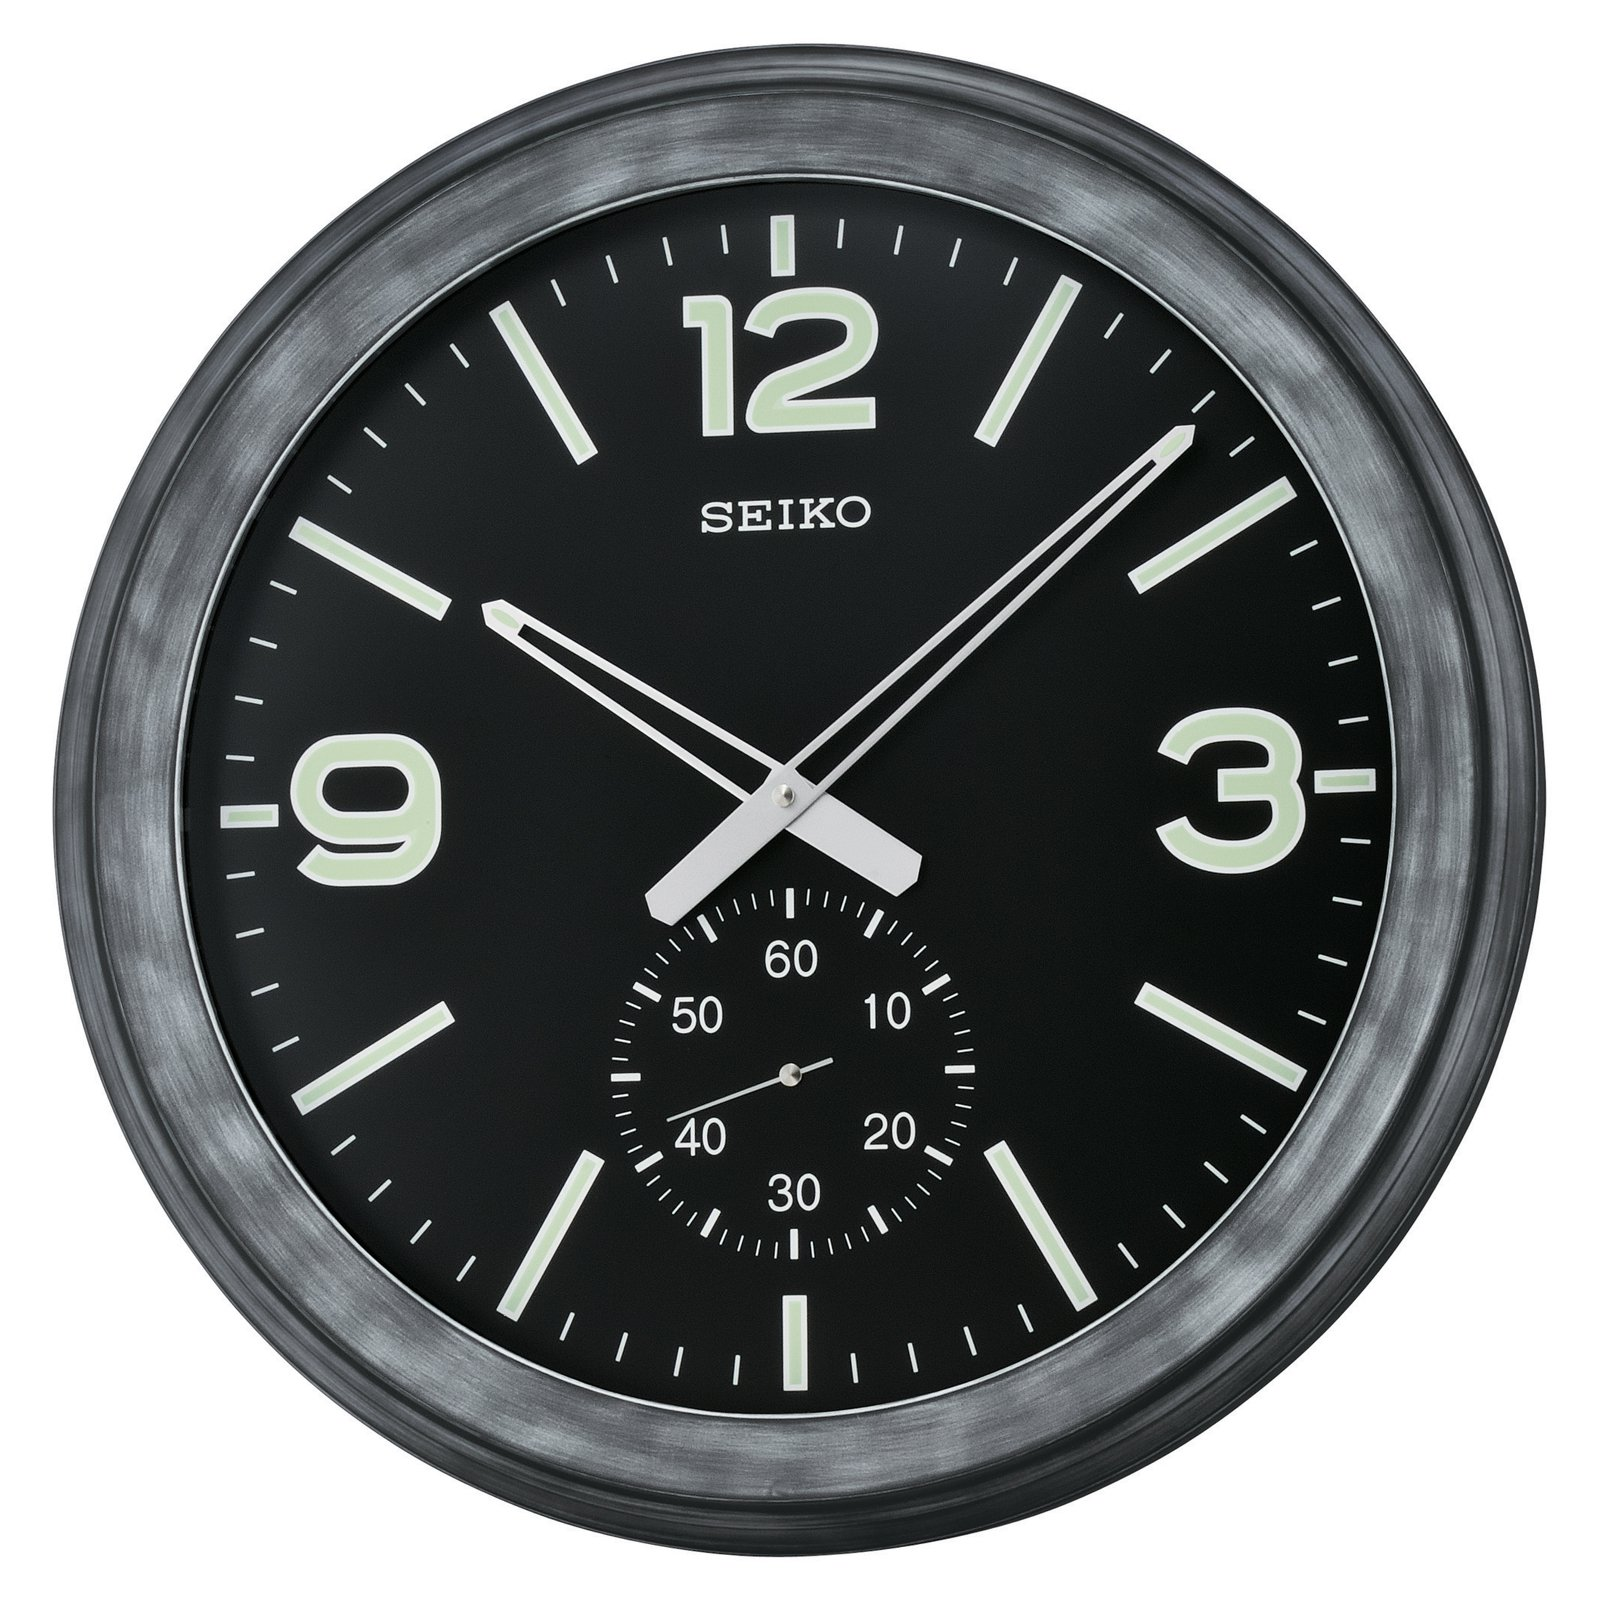 Seiko Black Modern Wall Clock with Subdial - 20 in. diam.